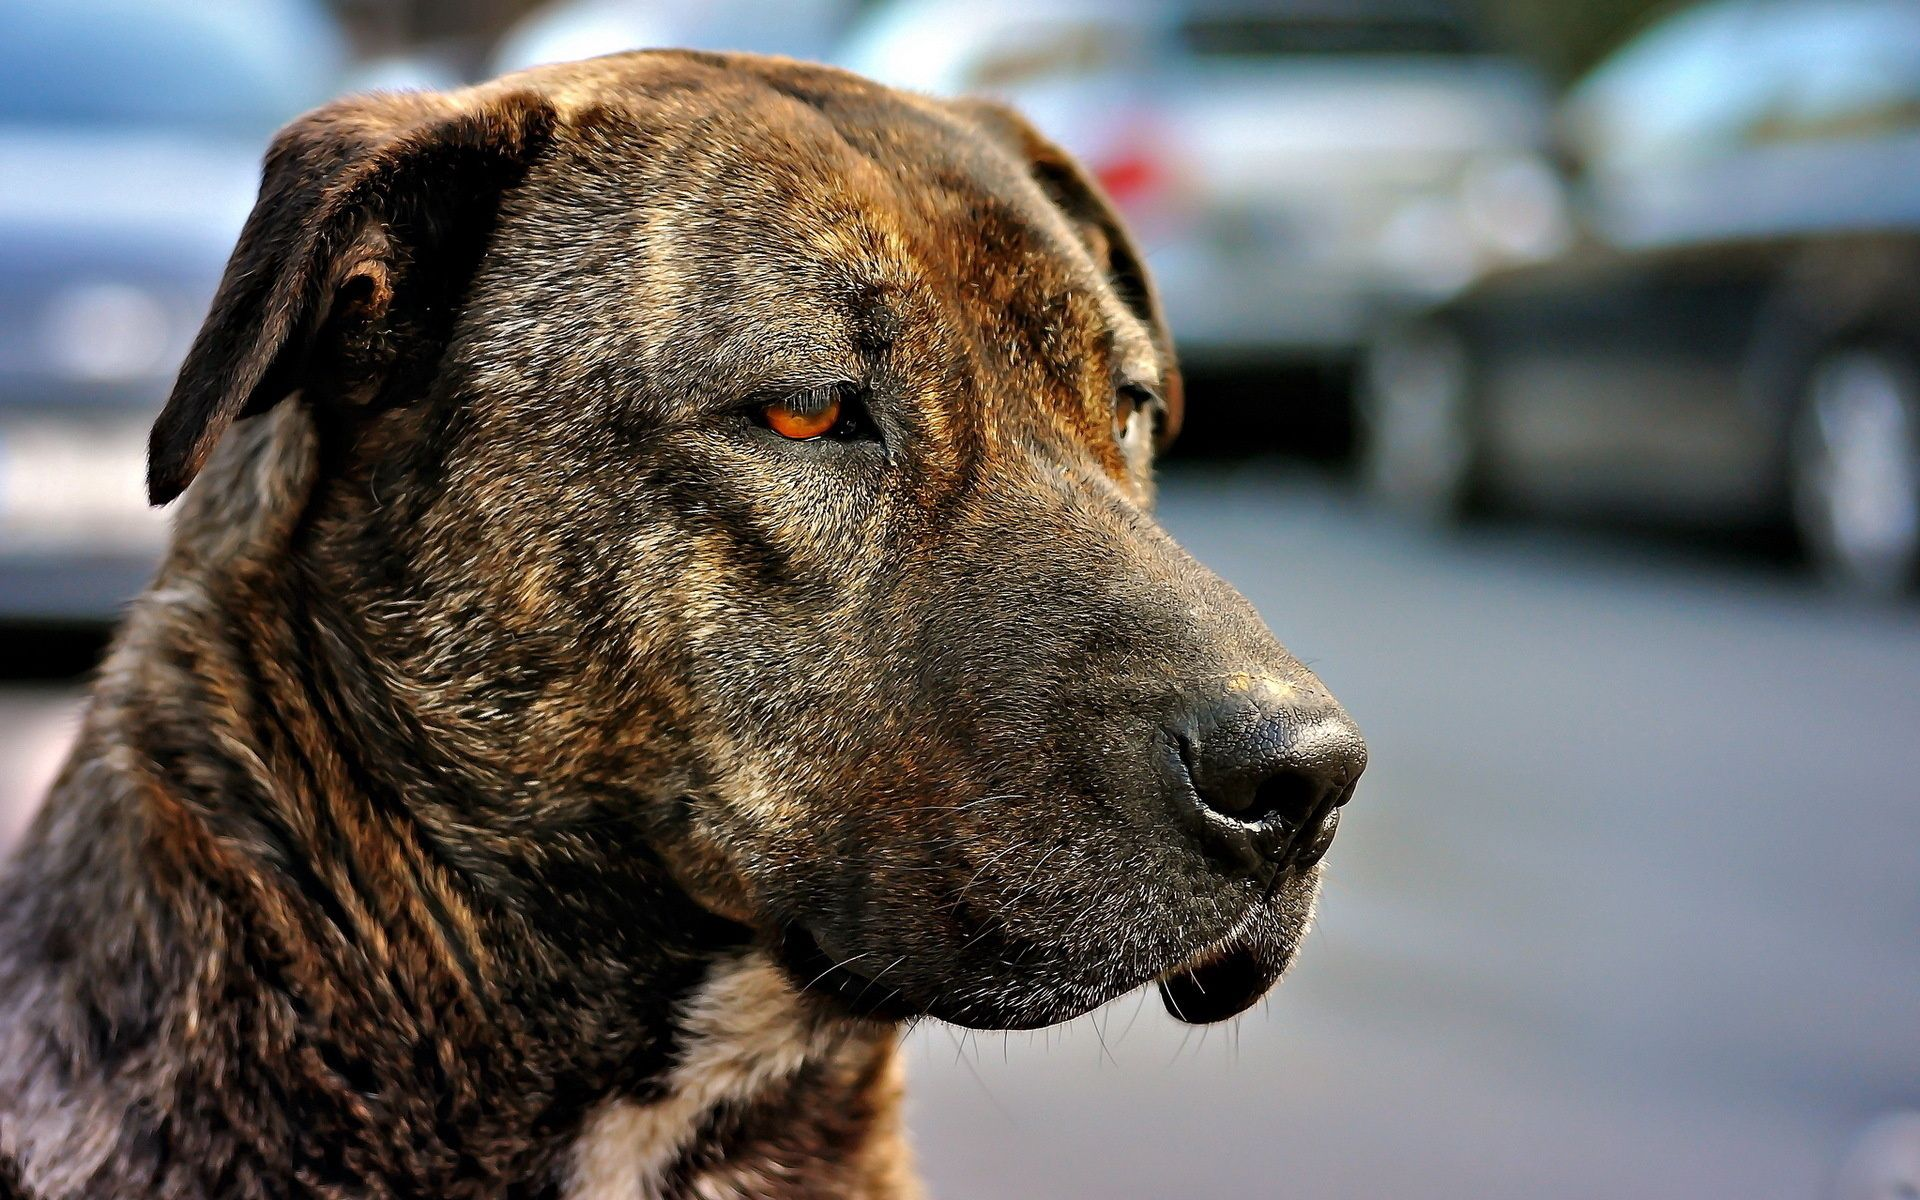 113324 download wallpaper Animals, Dog, Muzzle, Sight, Opinion, Color, Sadness, Sorrow screensavers and pictures for free